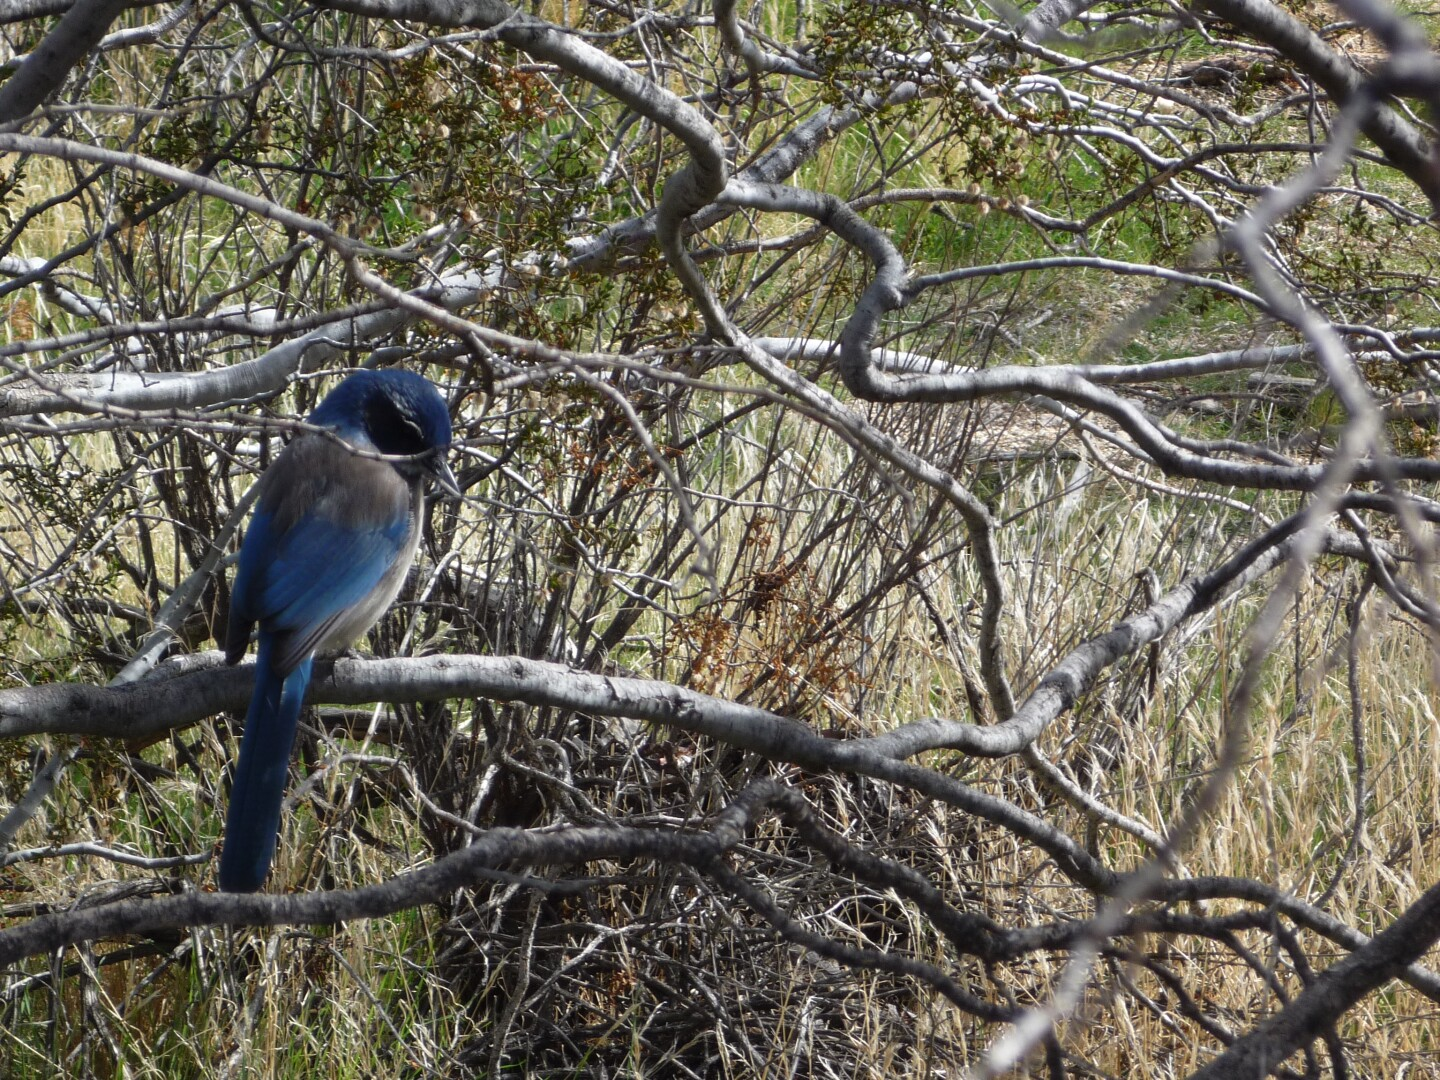 A blued bird perches on a tree along the Marsh Trail.